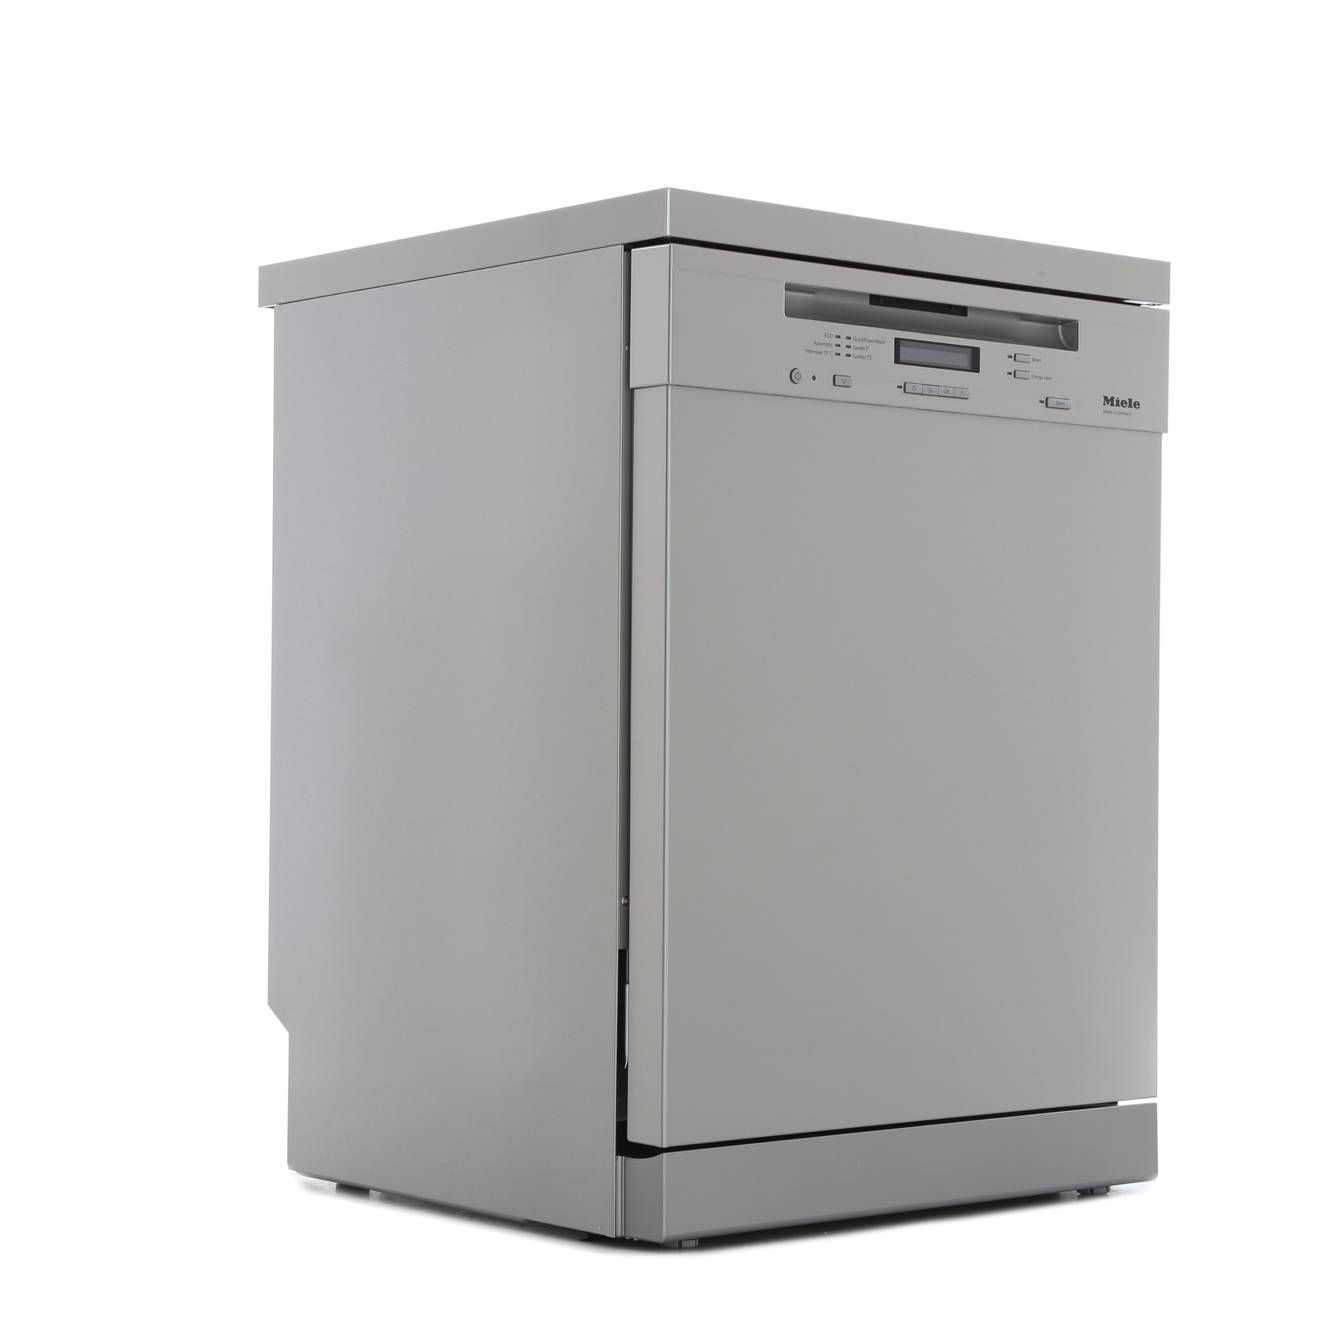 Miele G6730SC Clean Steel Dishwasher - Stainless Steel